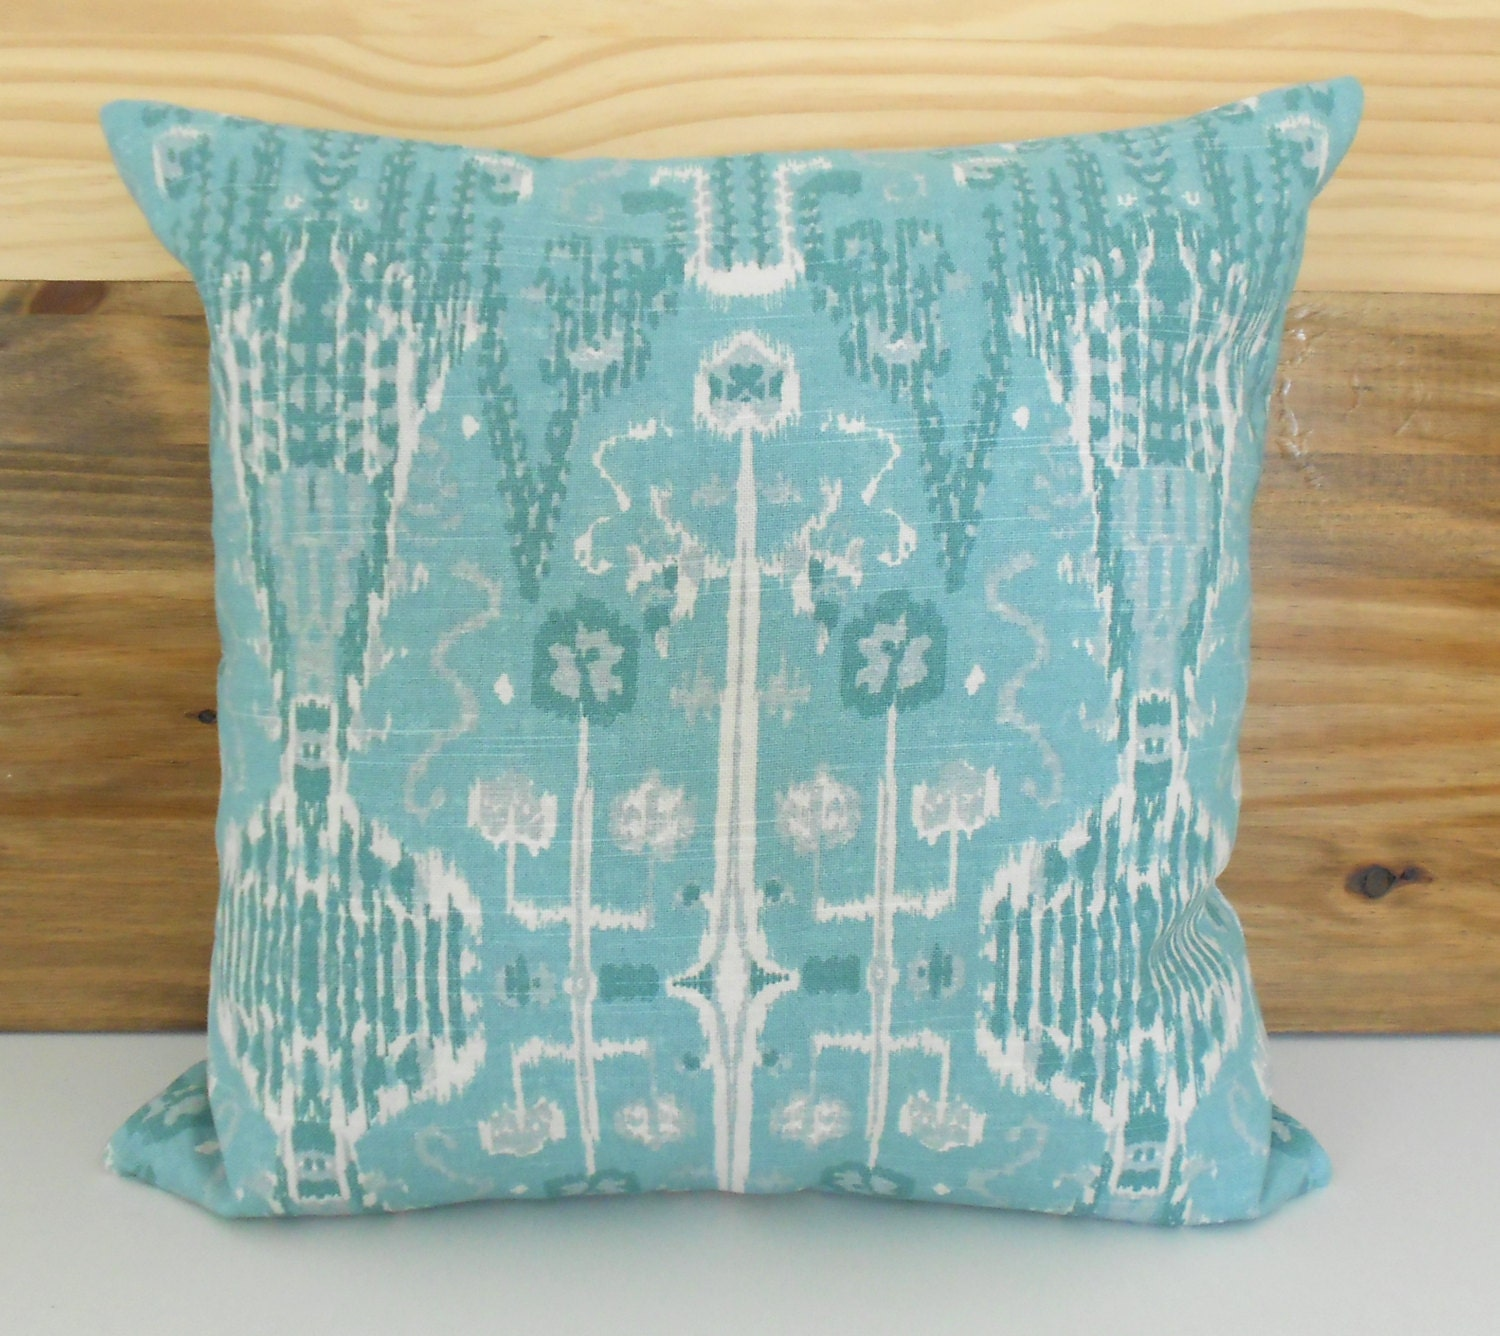 Decorative Pillows With Teal : Teal seafoam ikat decorative pillow cover